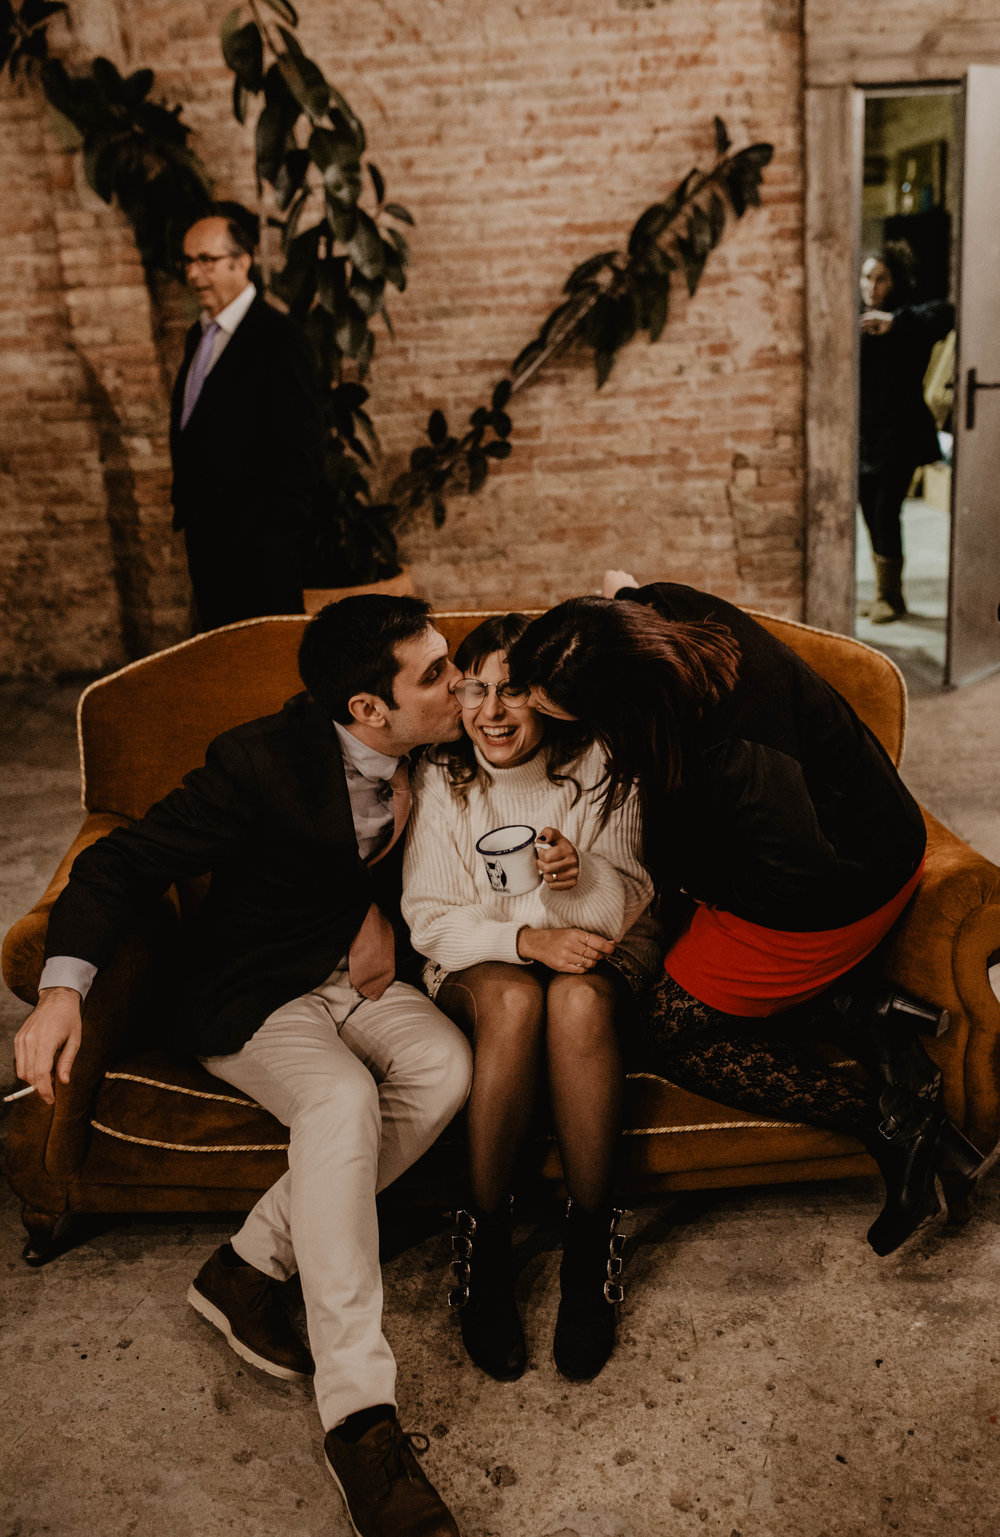 thenortherngirlphotography-photography-weddingphotography-couple-bodasconestilo-bodasenbarcelona-martadavid-1480.jpg